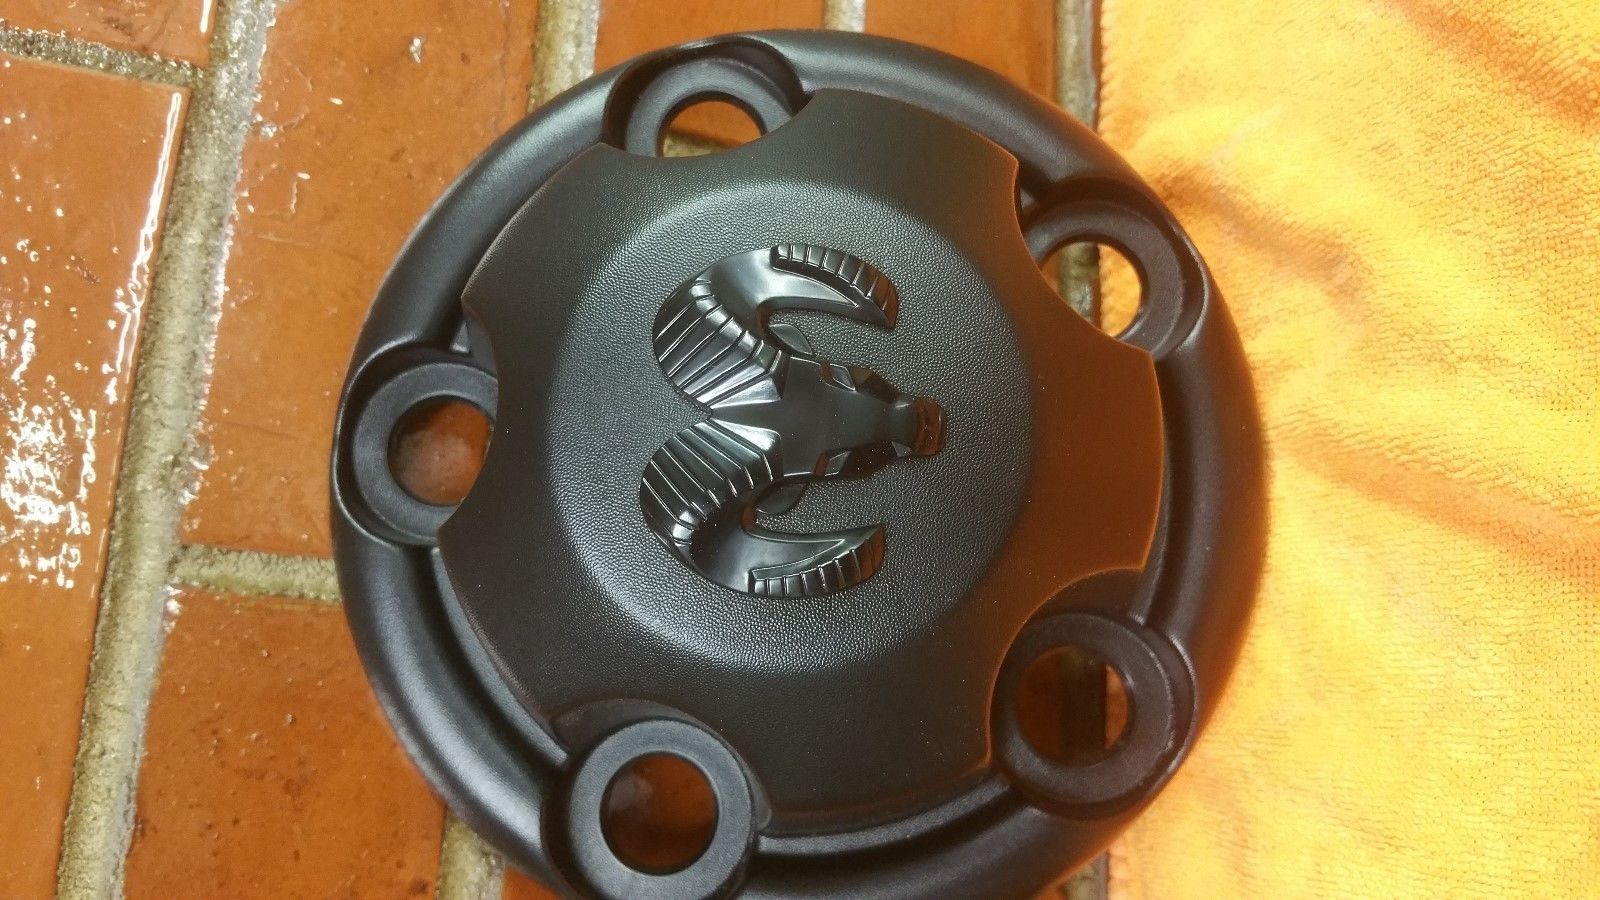 DODGE Ram 1500 Center Wheel Cap 52038266 Black Does not apply